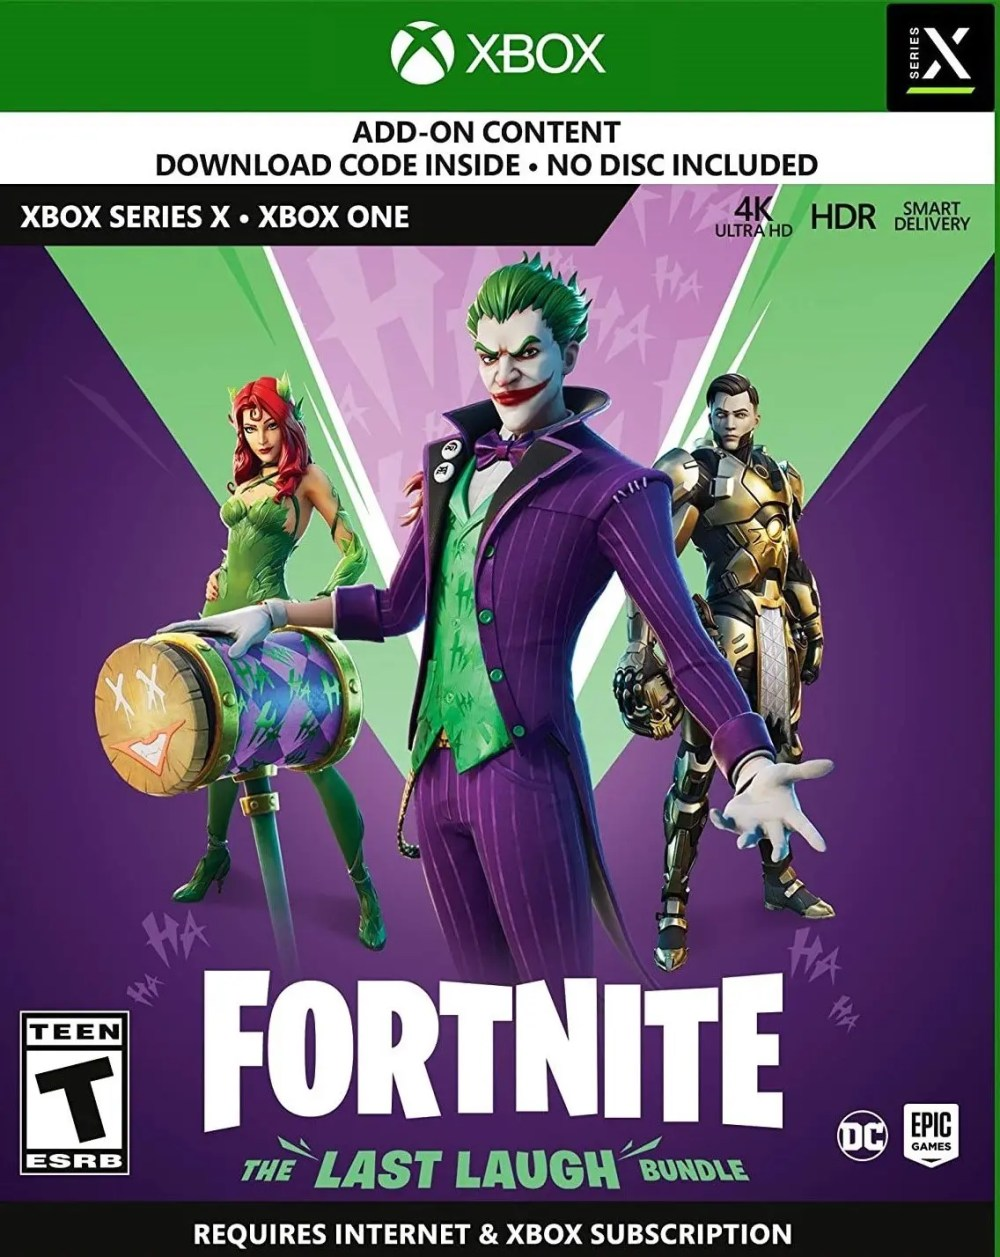 Fortnite: The Last Laugh Bundle for Xbox One